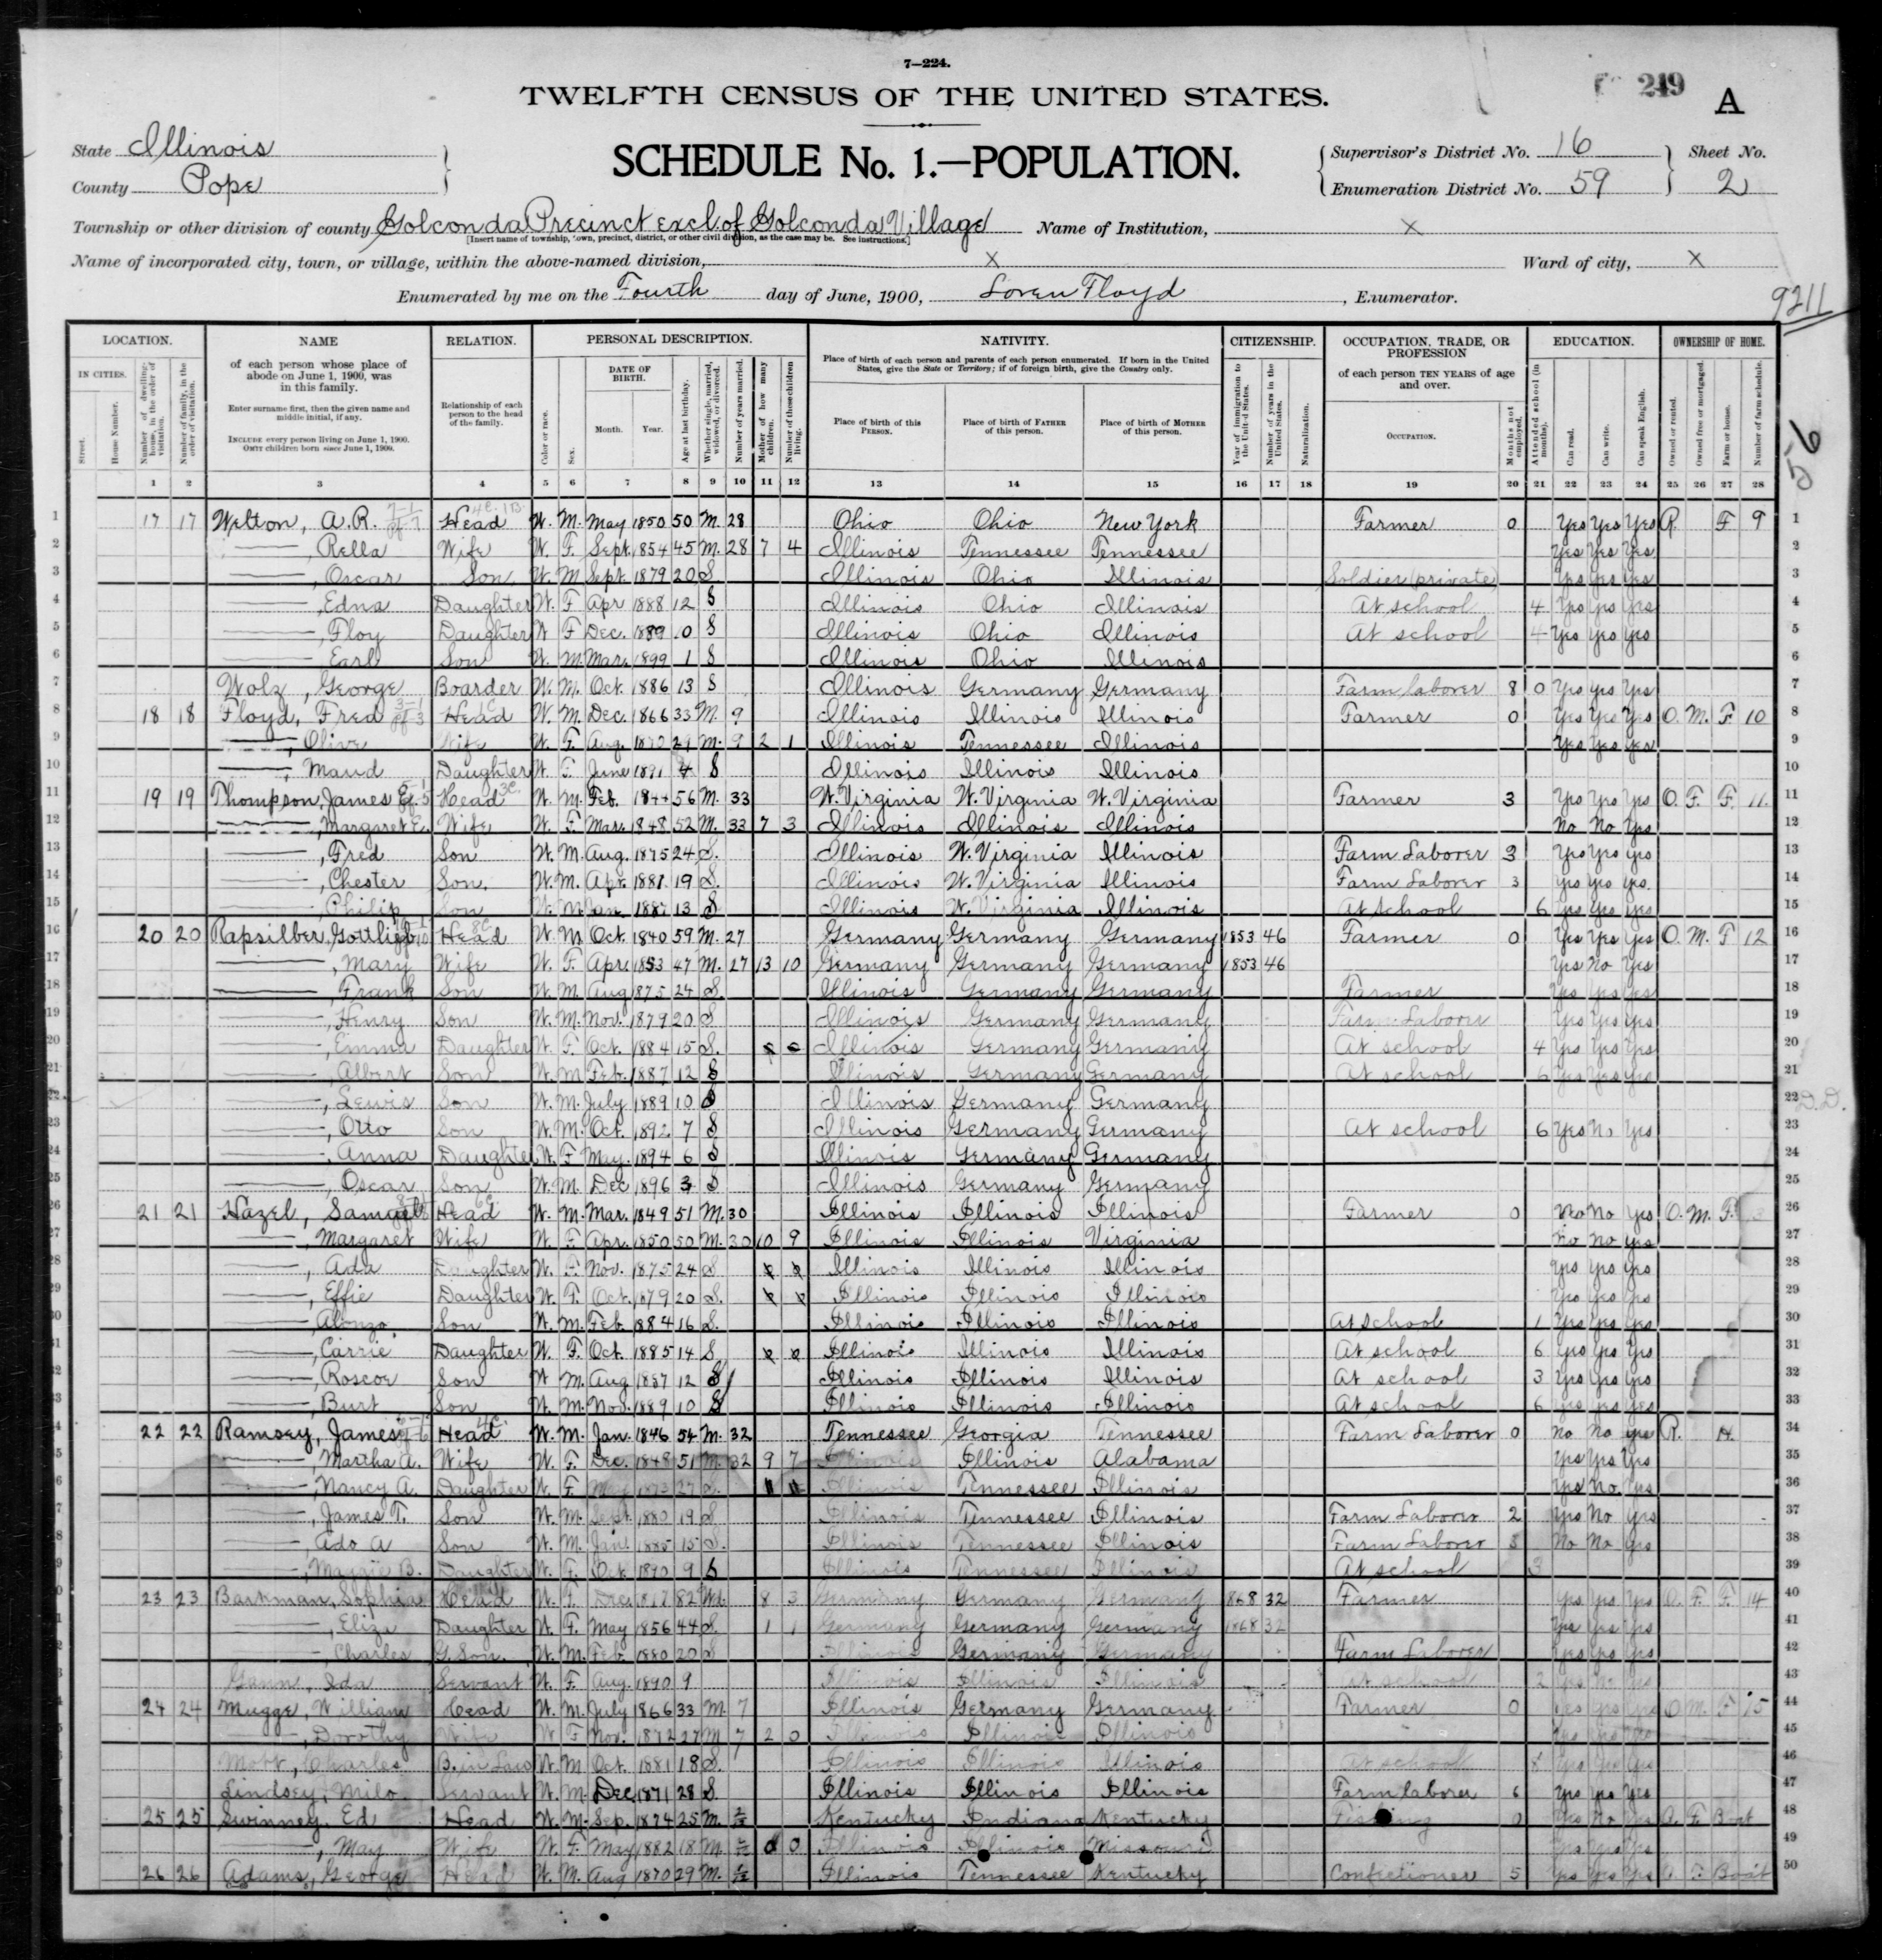 Illinois: POPE County, Enumeration District 59, Sheet No. 2A